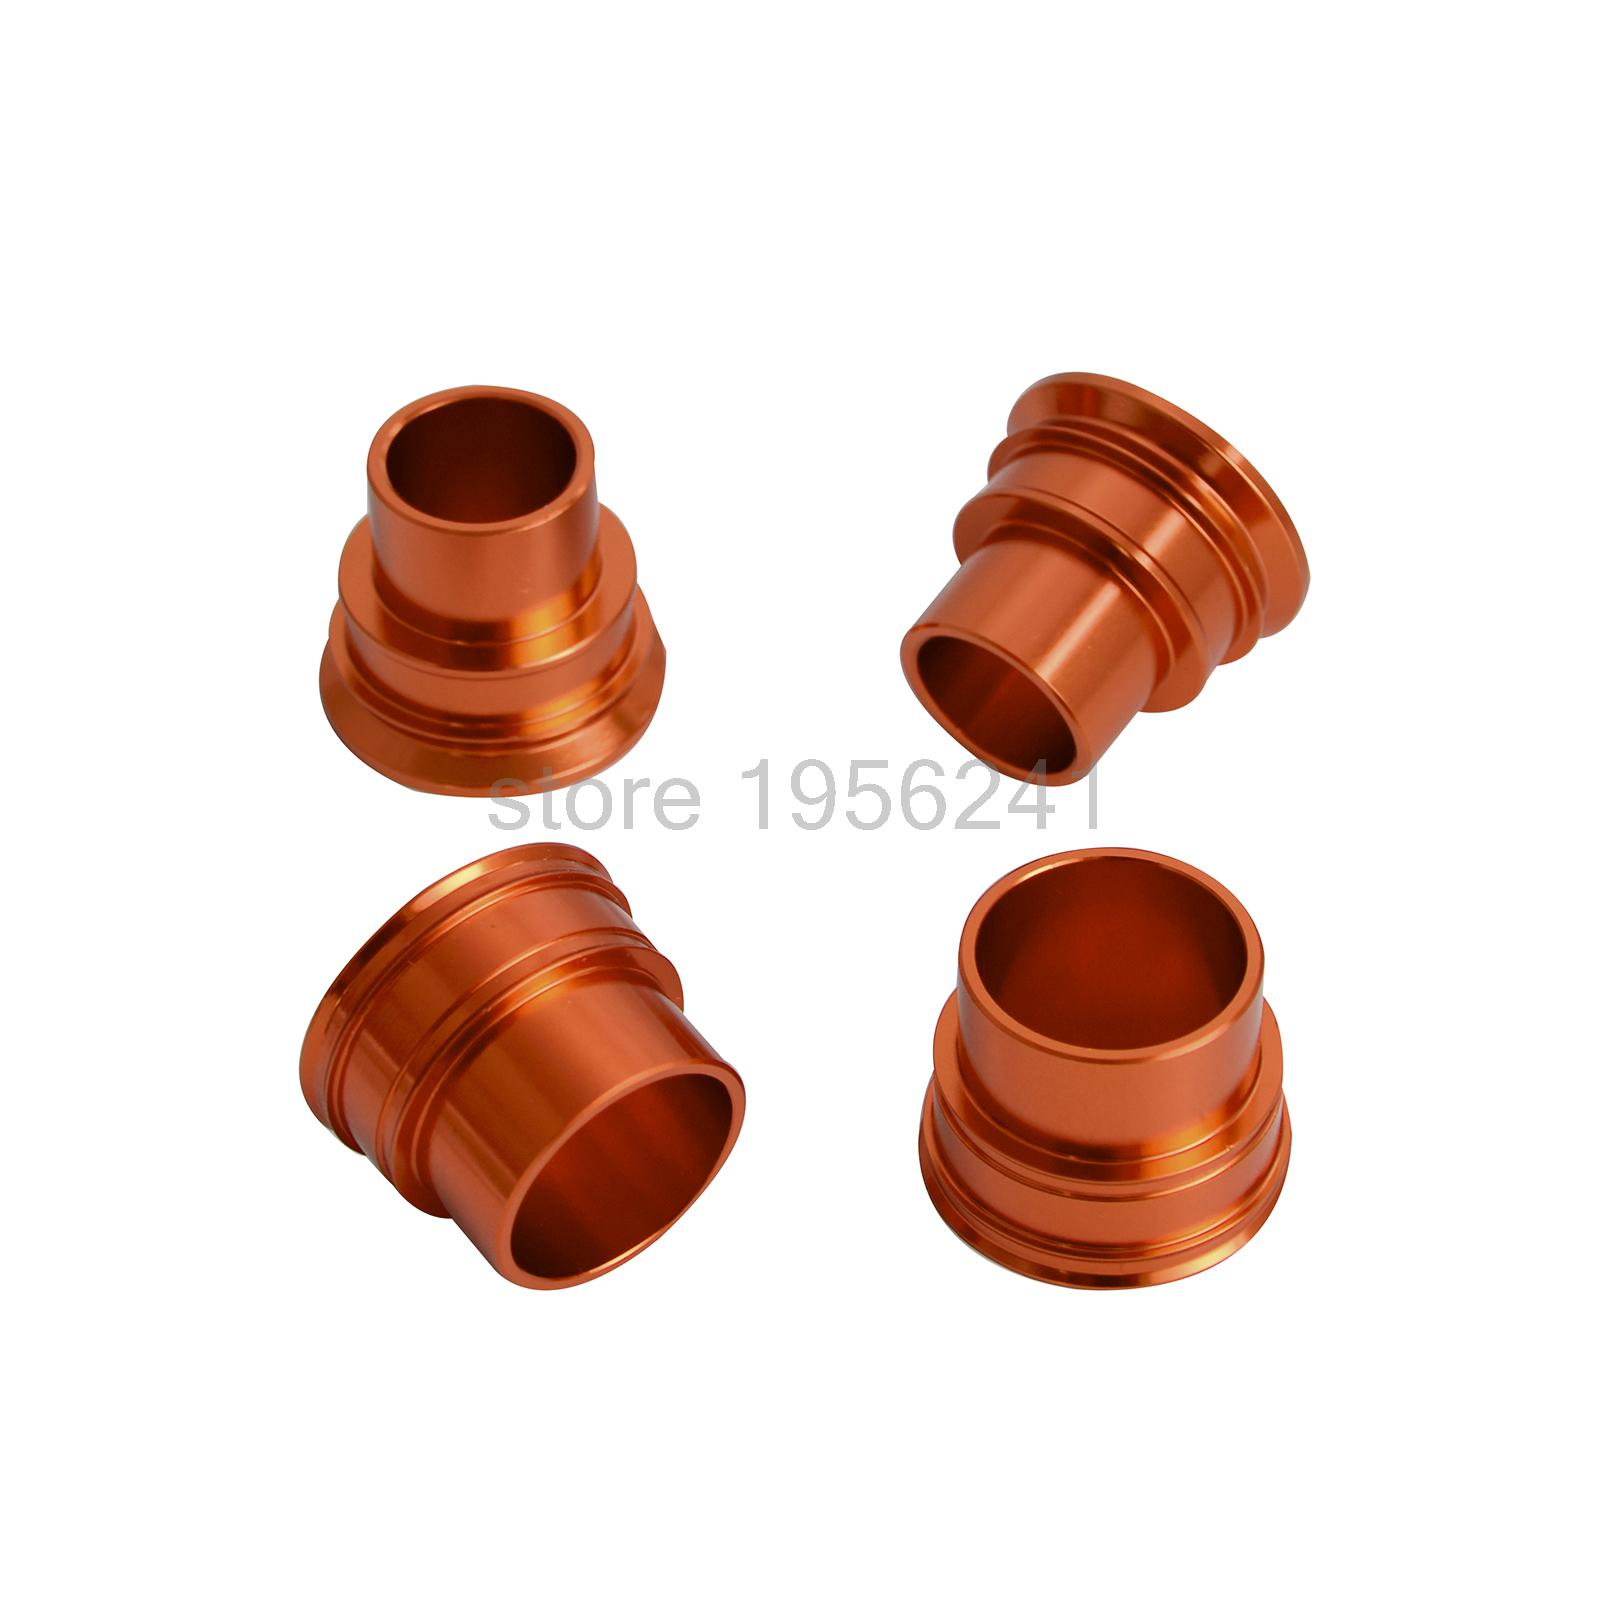 CNC Front and Rear Wheel Spacers/ Hub Collars For KTM 125 250 300 350 400 450 525 530 SX SXF XCF 2003 - 2014 2006 2008 2010 billet rear hub carriers for losi 5ive t